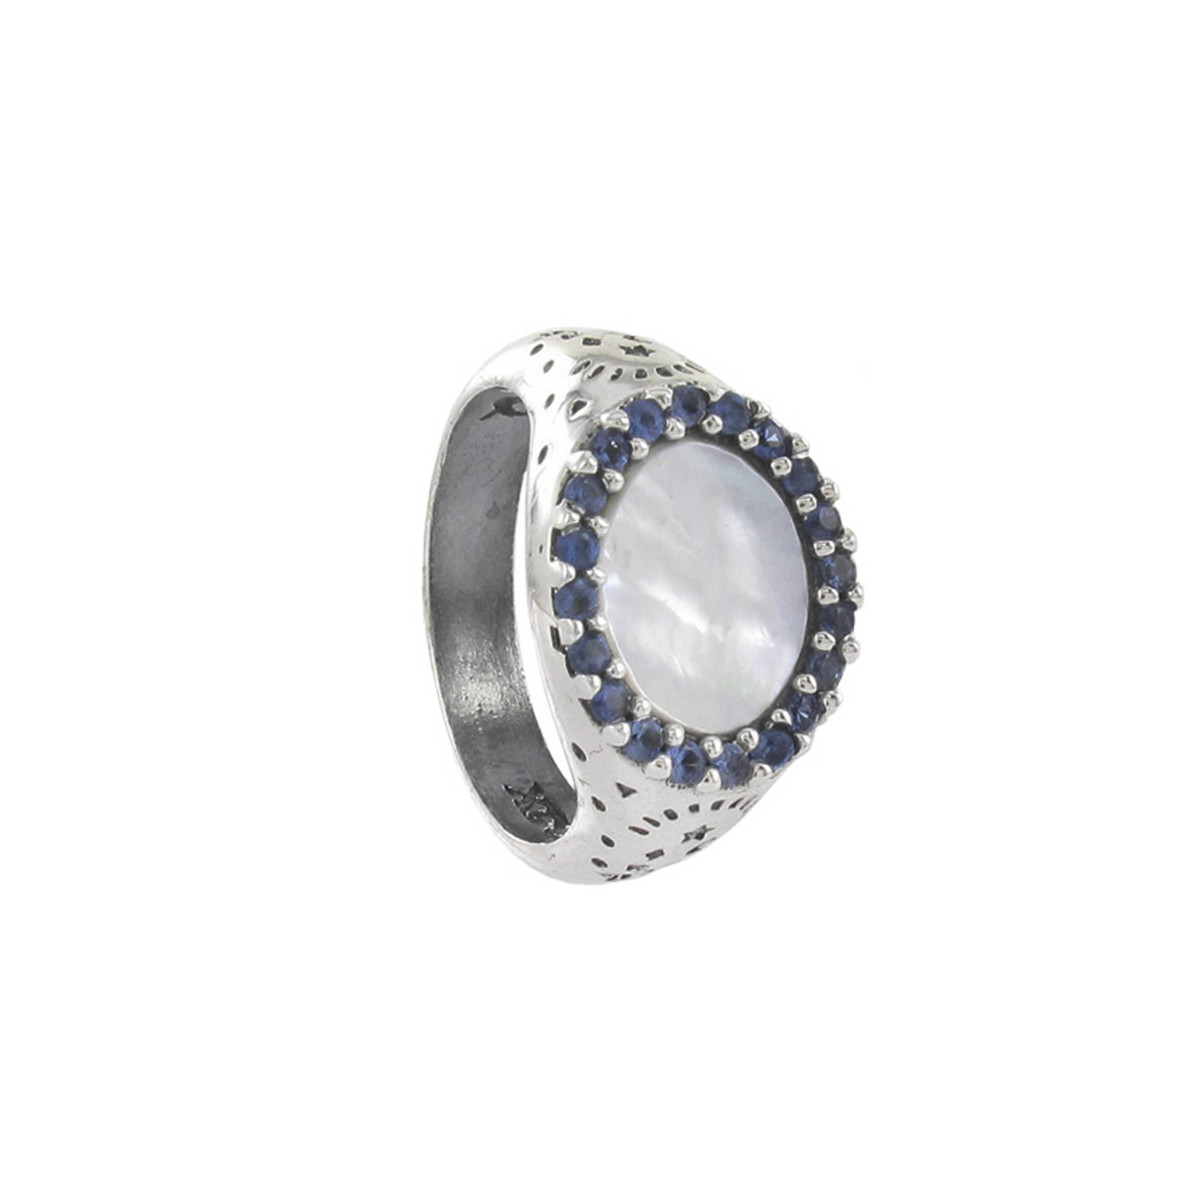 SILVER RING MOTHER OF PEARL AND SAPPHIRES